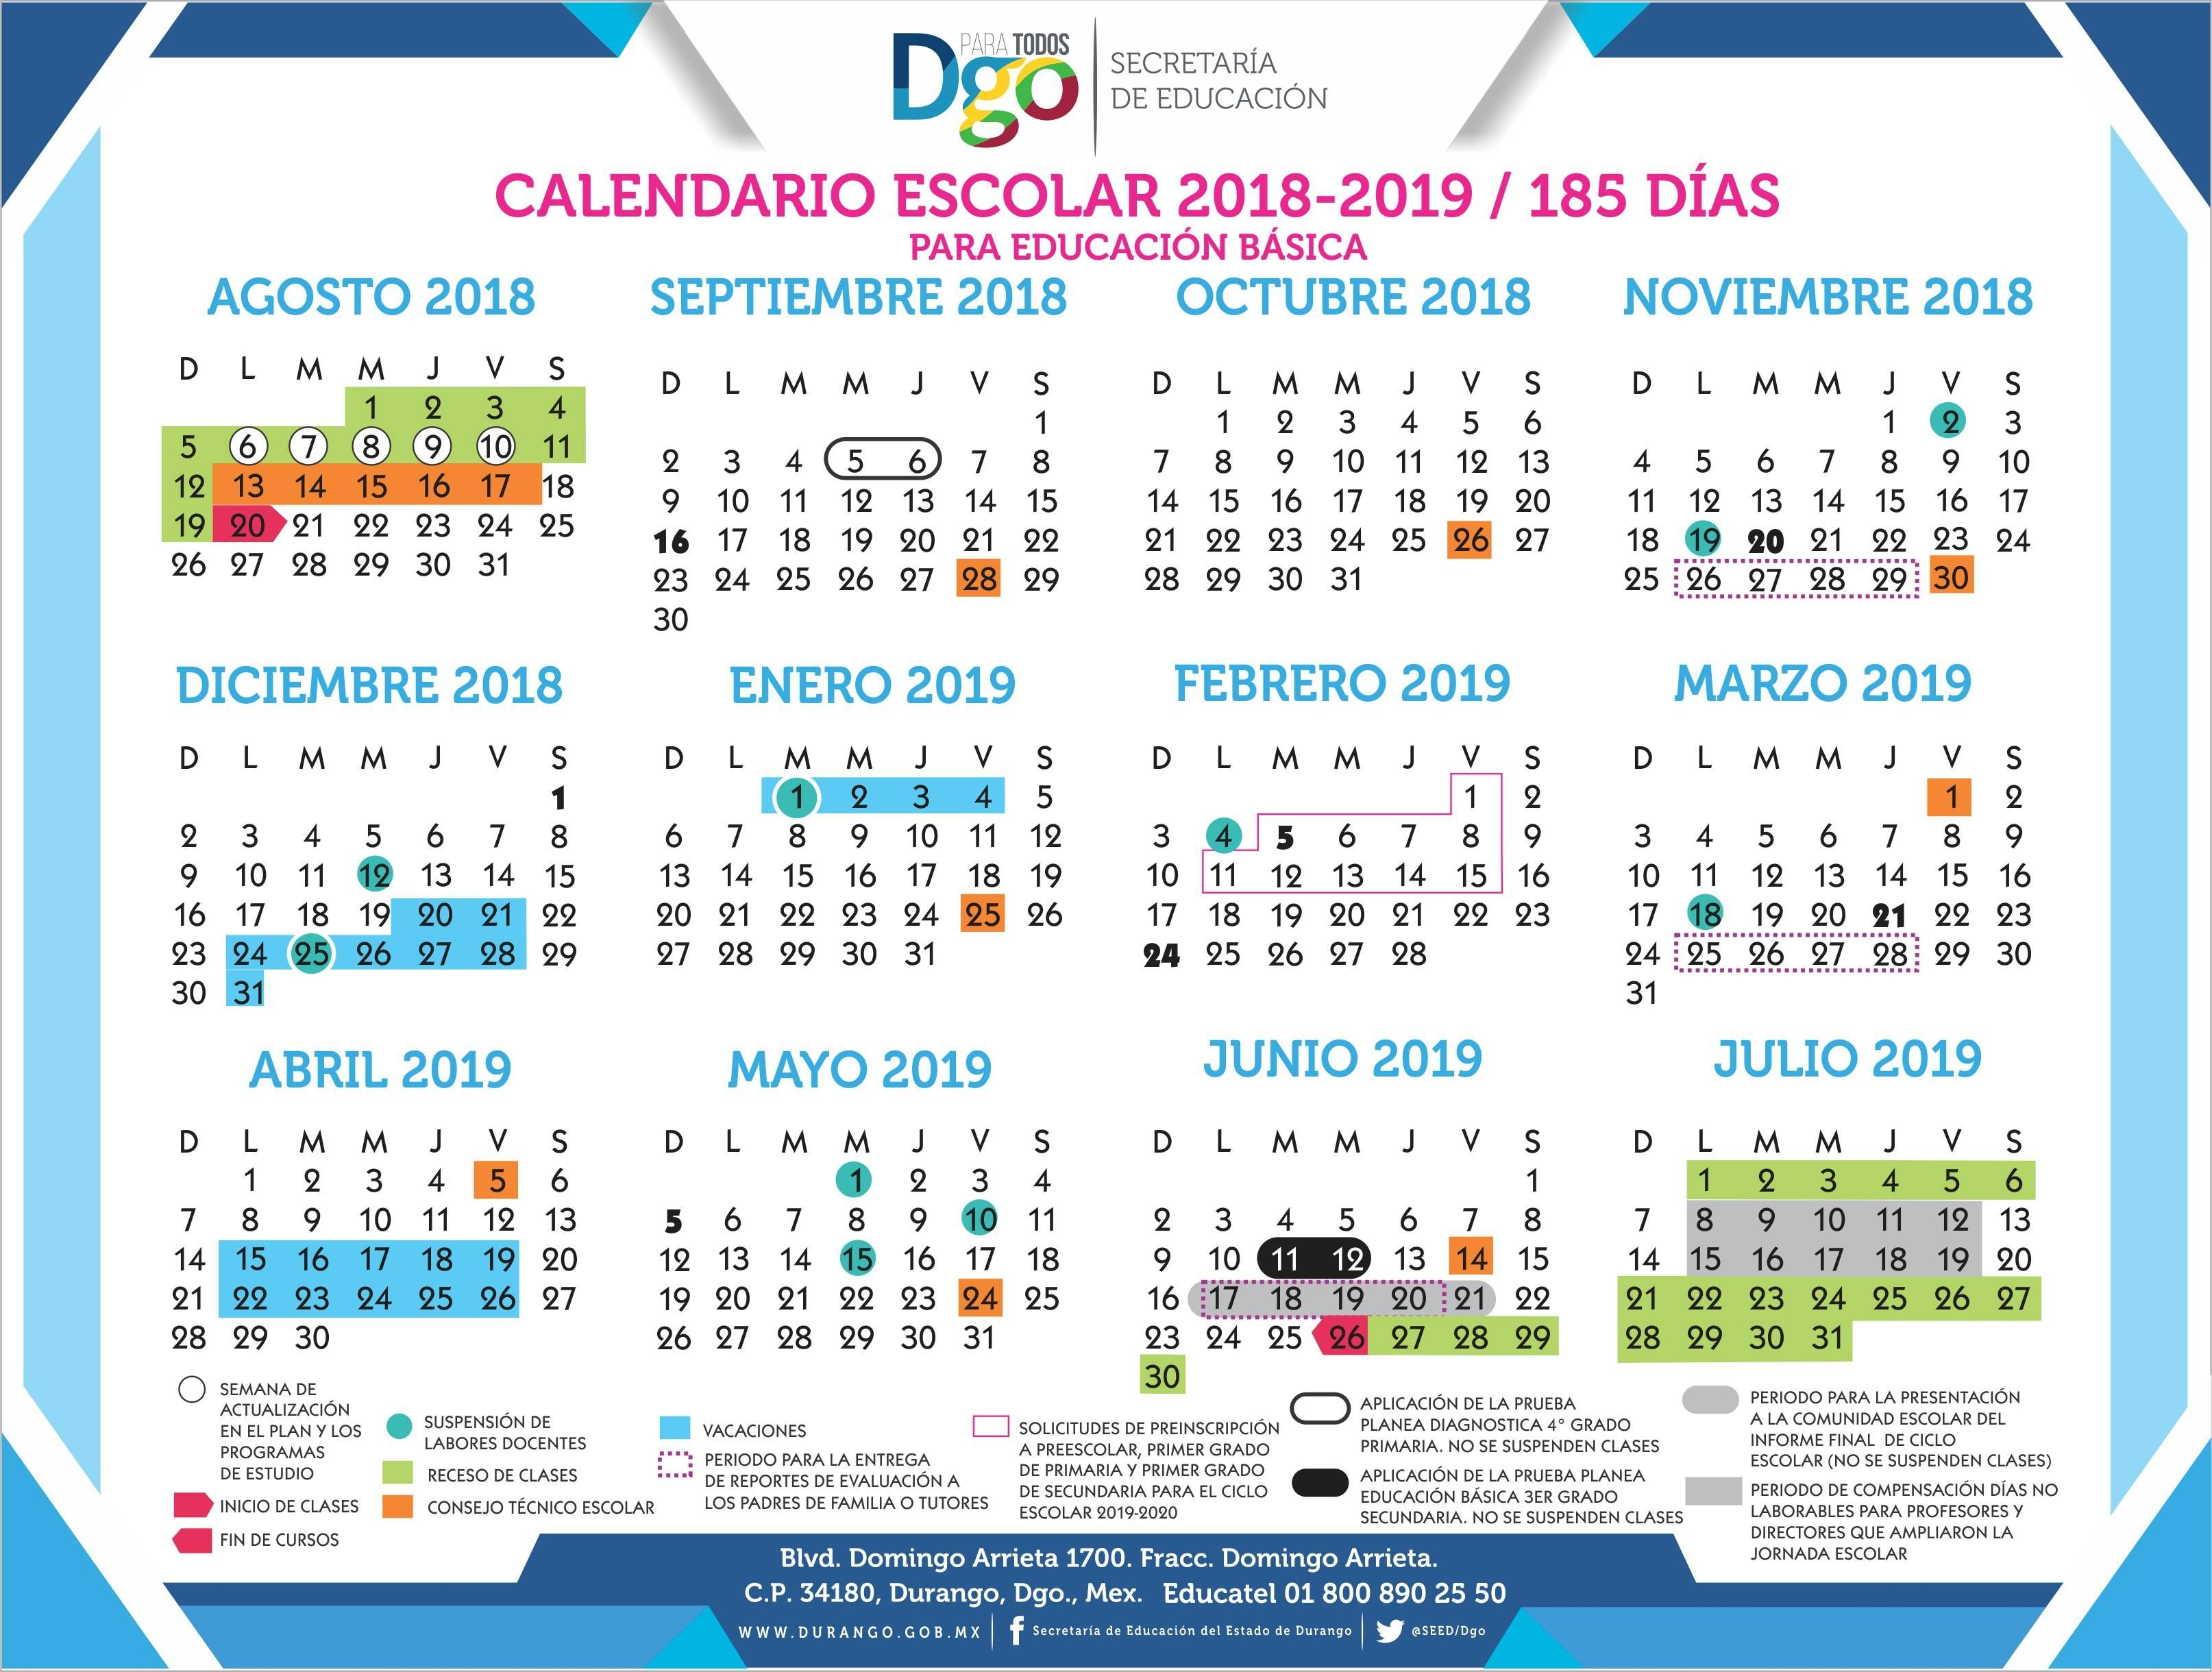 Calendario Escolar 20182019  Secretaría De Educación for Calendario Escolar Sep 2020 2020